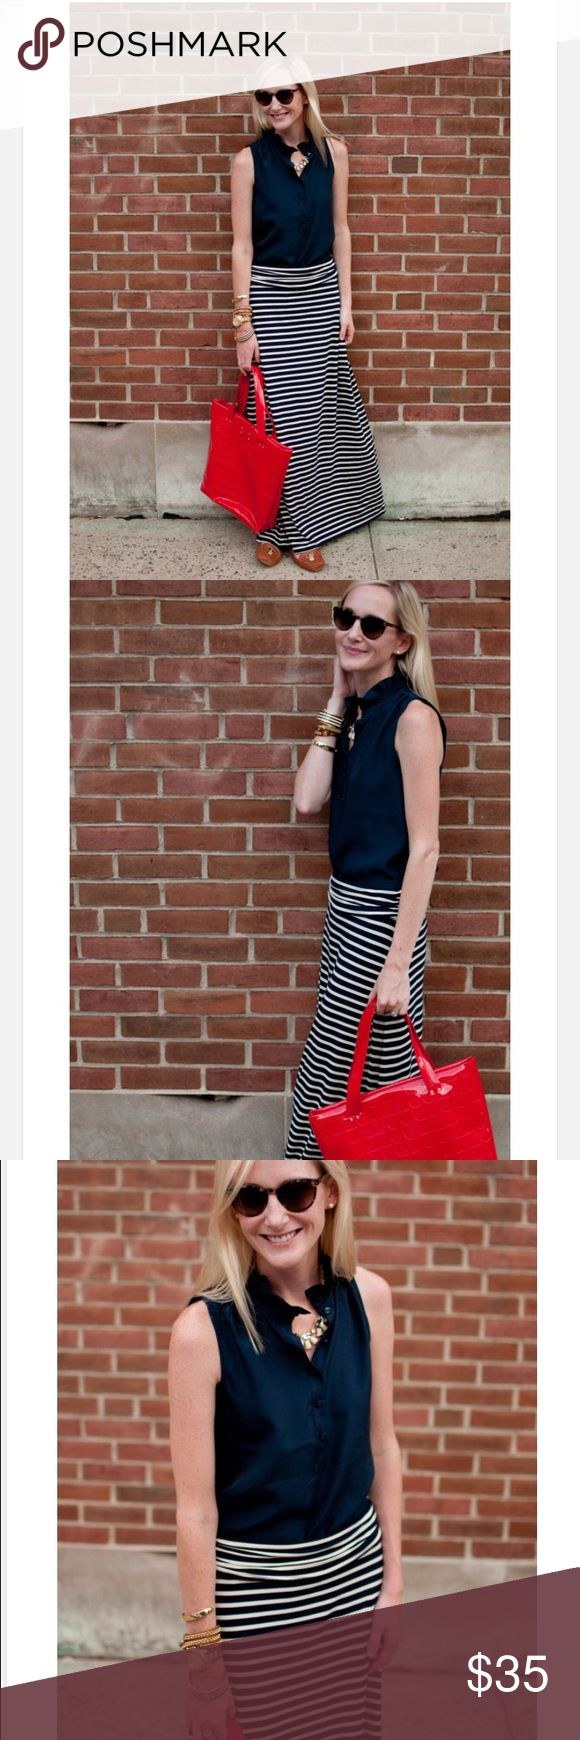 J. Crew black & white striped jersey maxi skirt J. Crew black & white striped jersey maxi skirt in a size small. Only worn twice! No stains or holes! Great for the Summer! So many great ways to wear this skirt and it is so comfortable! J. Crew Skirts Maxi